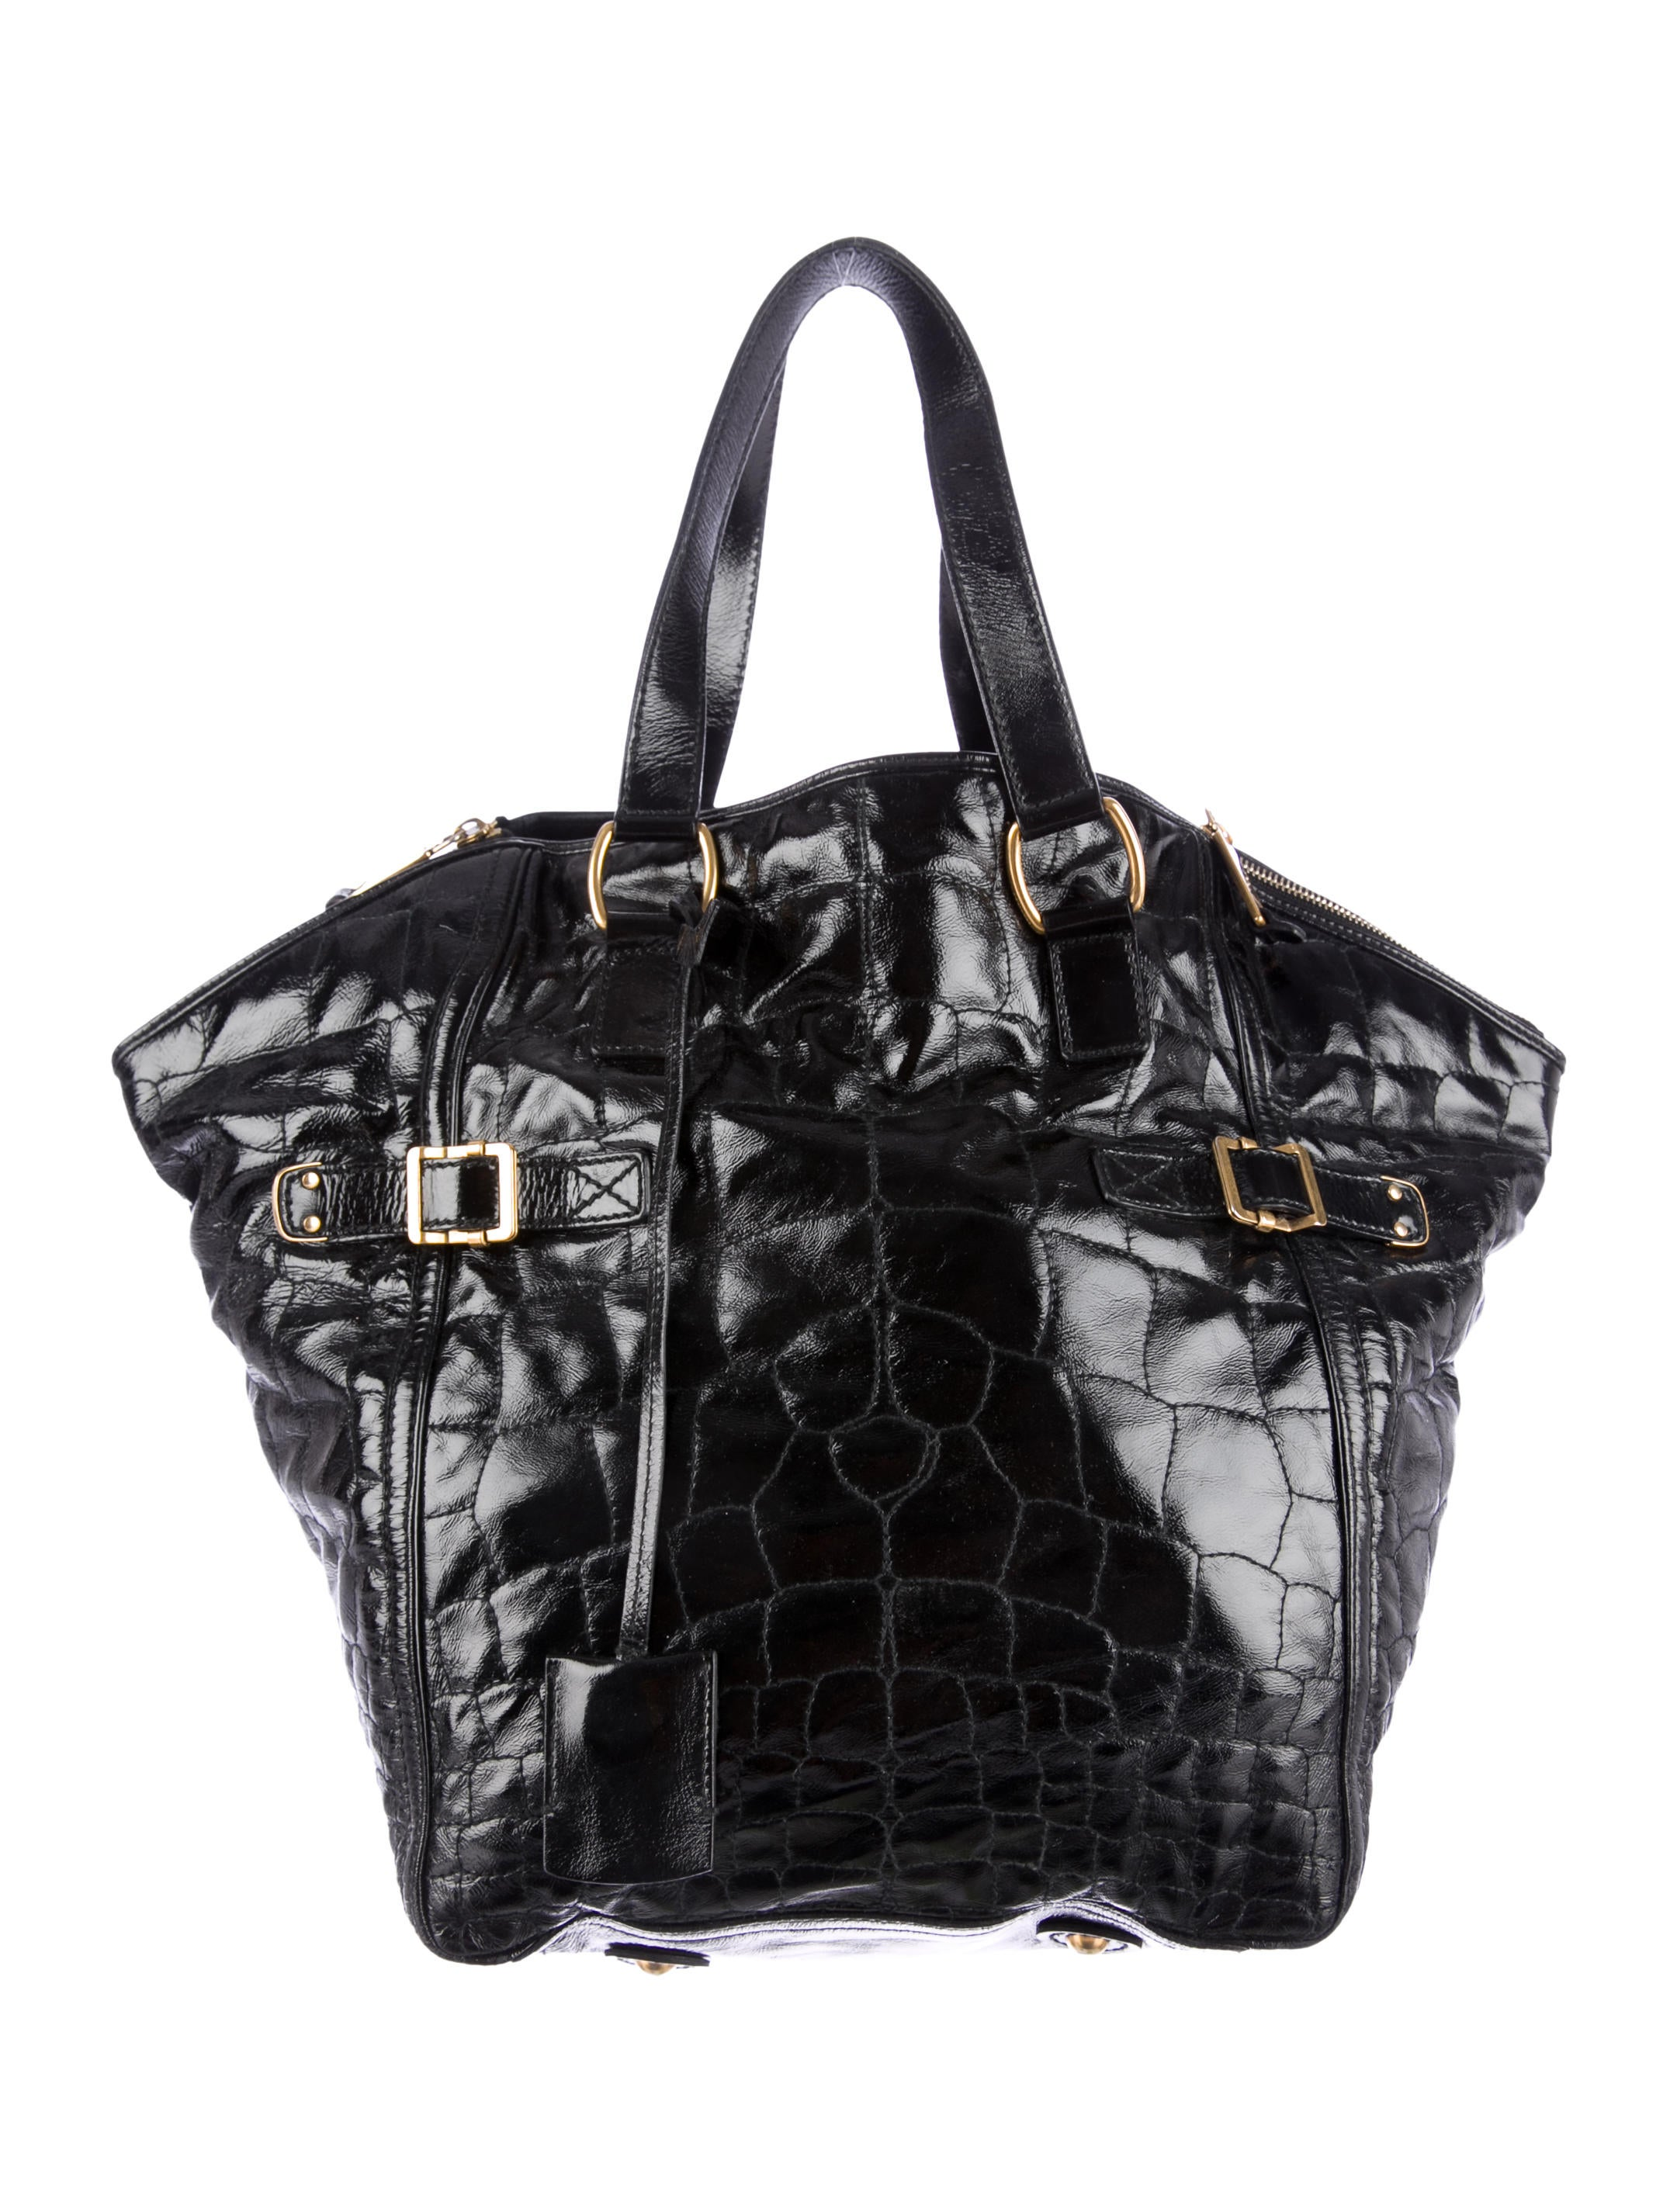 ysl messenger bag black - Yves Saint Laurent Quilted Patent Leather Tote - Handbags ...